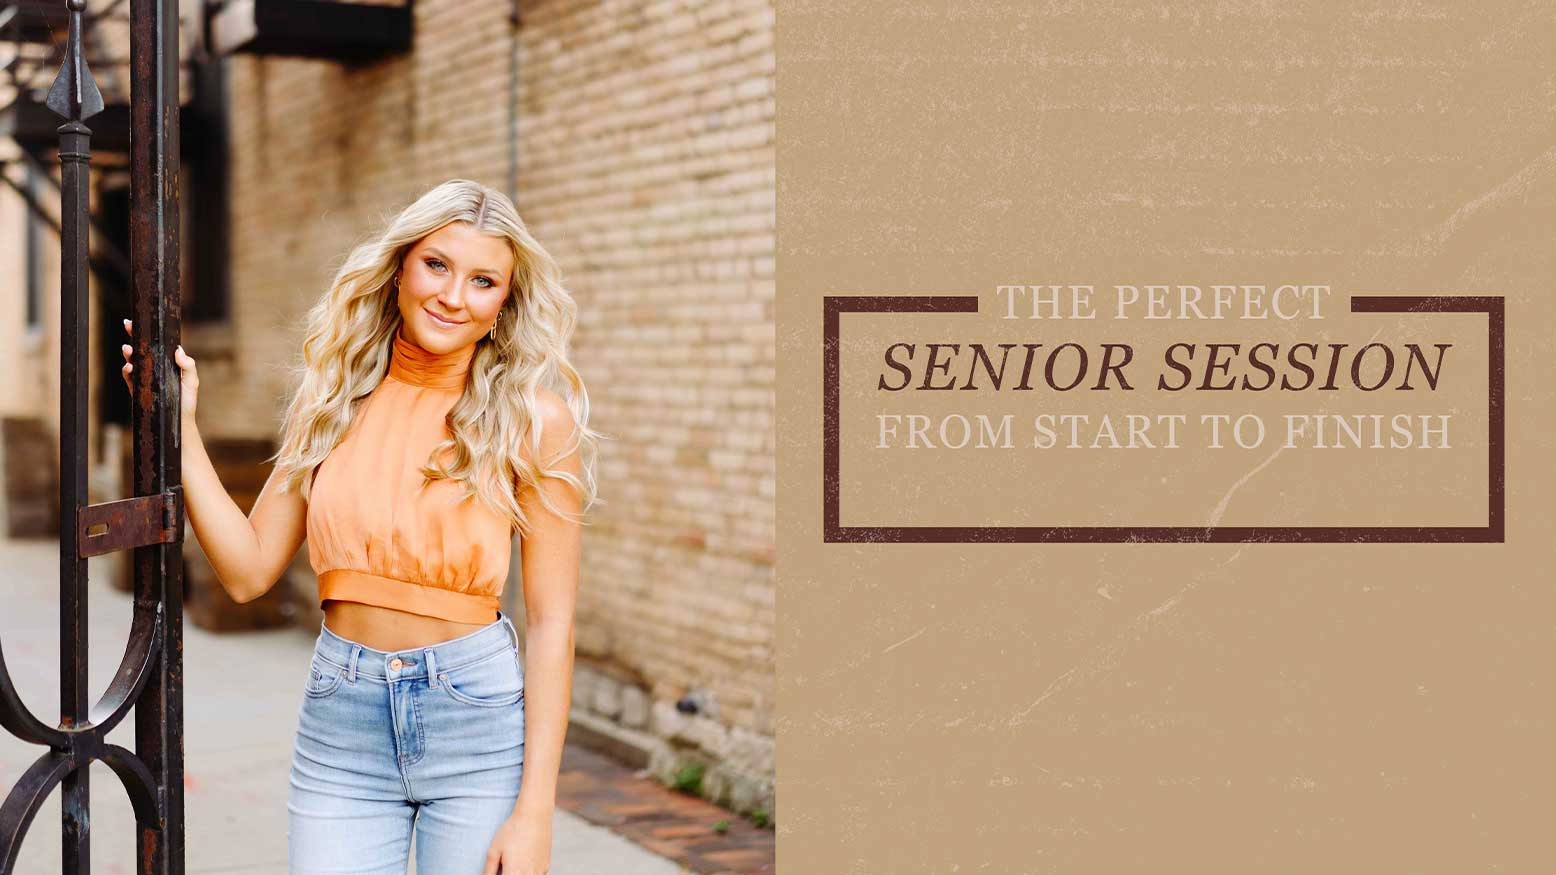 The Perfect Senior Session From Start to Finish